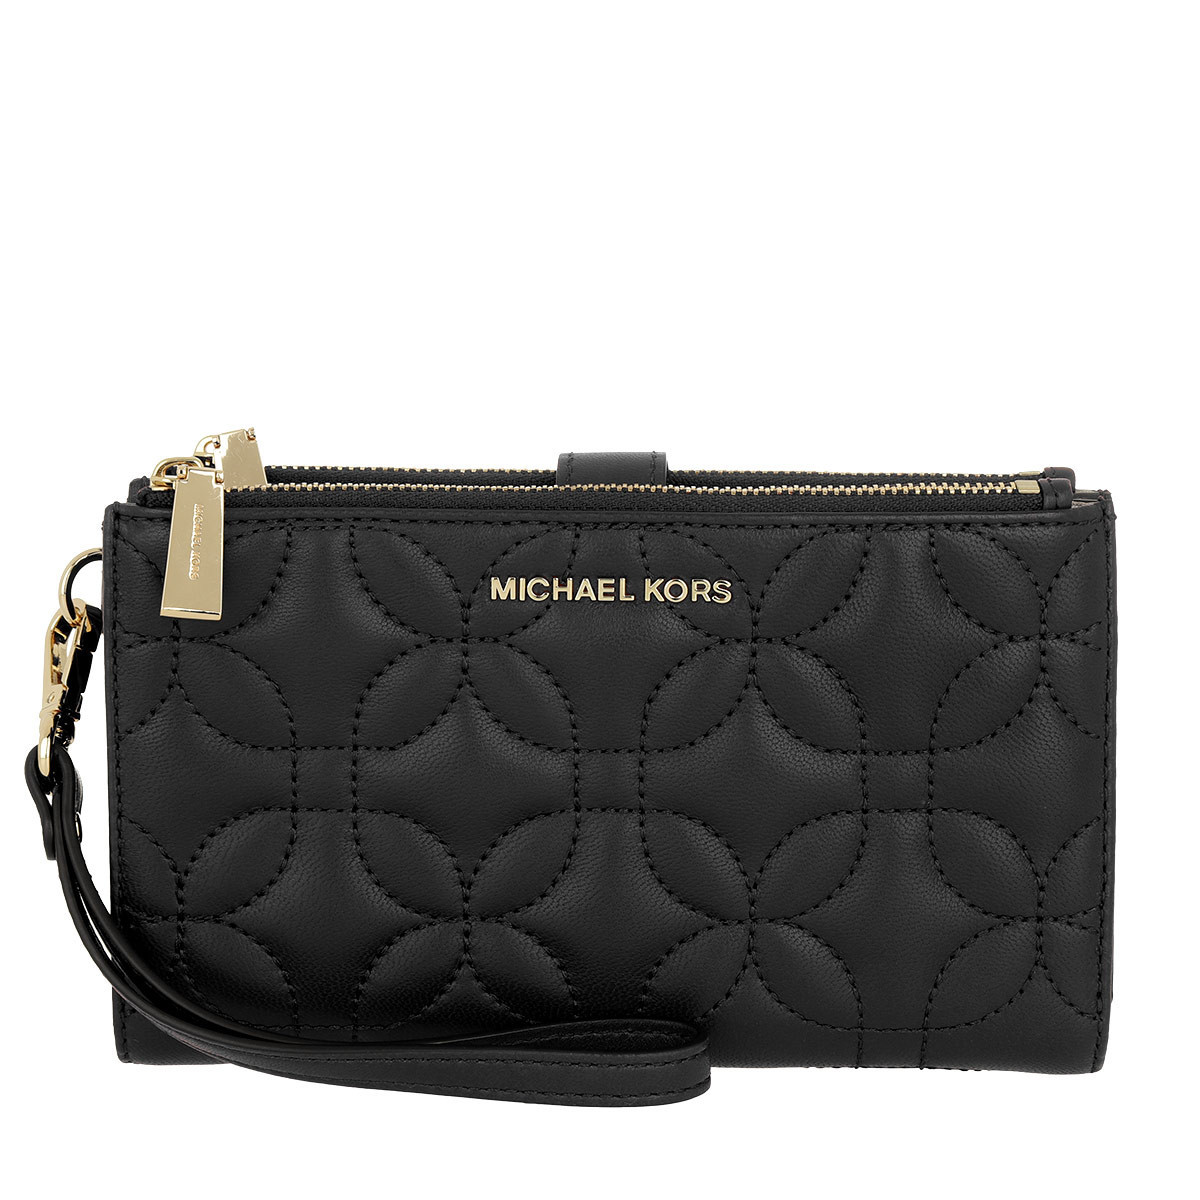 michael kors portemonnaie wristlet doublezip wallet. Black Bedroom Furniture Sets. Home Design Ideas